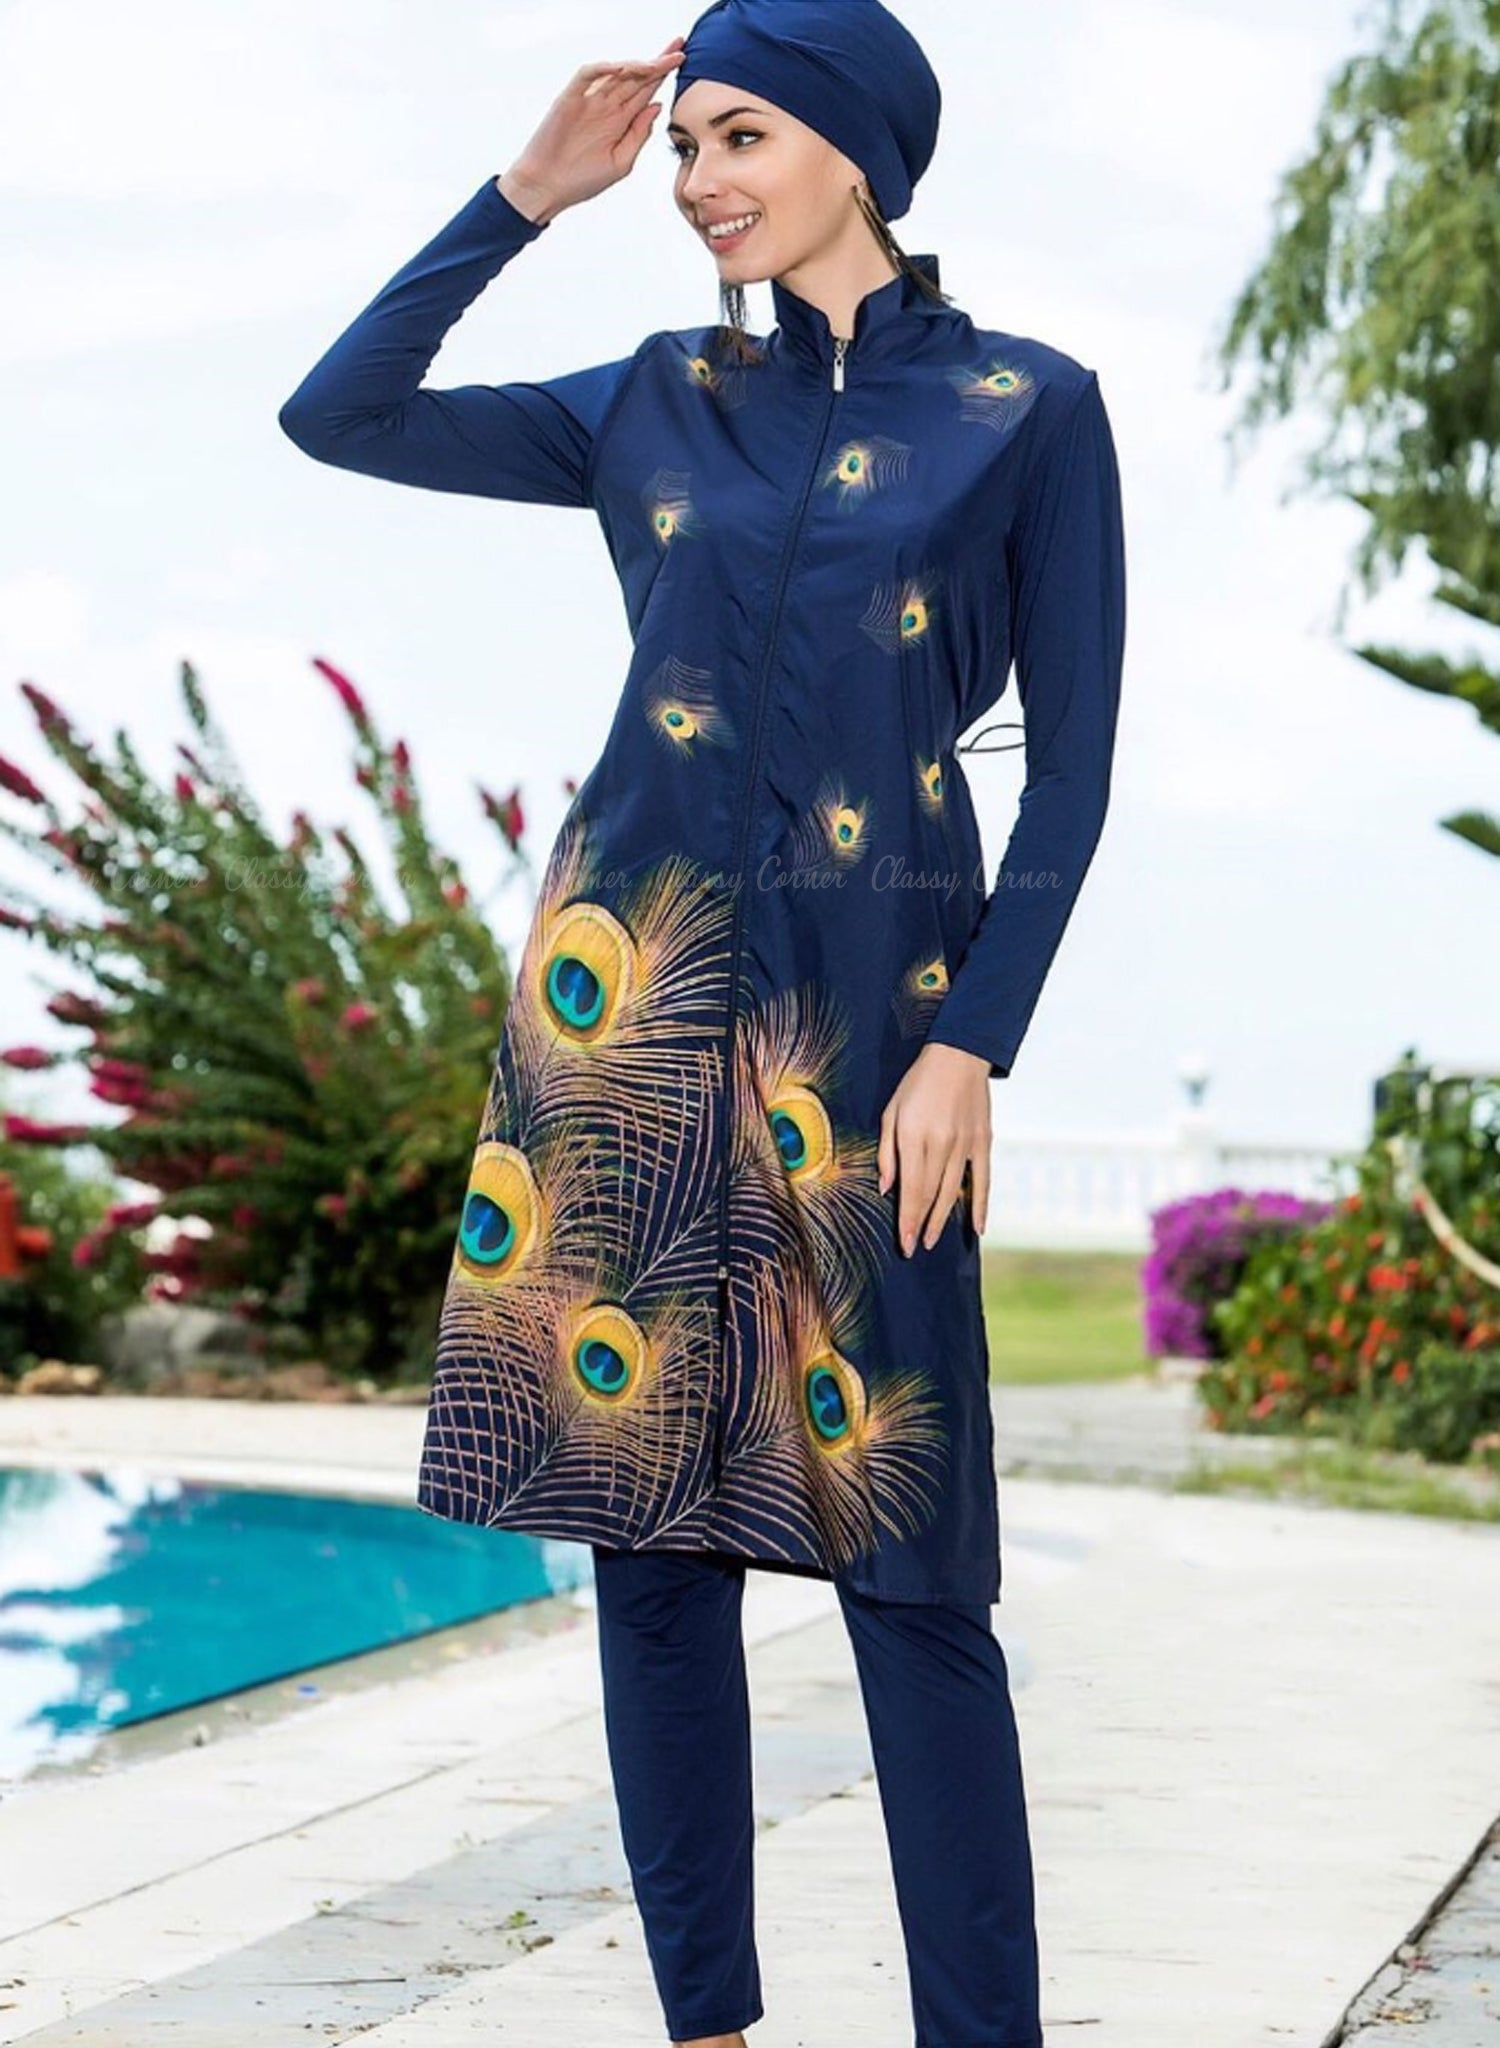 Yellow Peacock Feathers Navy Blue Full Bodysuit Swimsuit